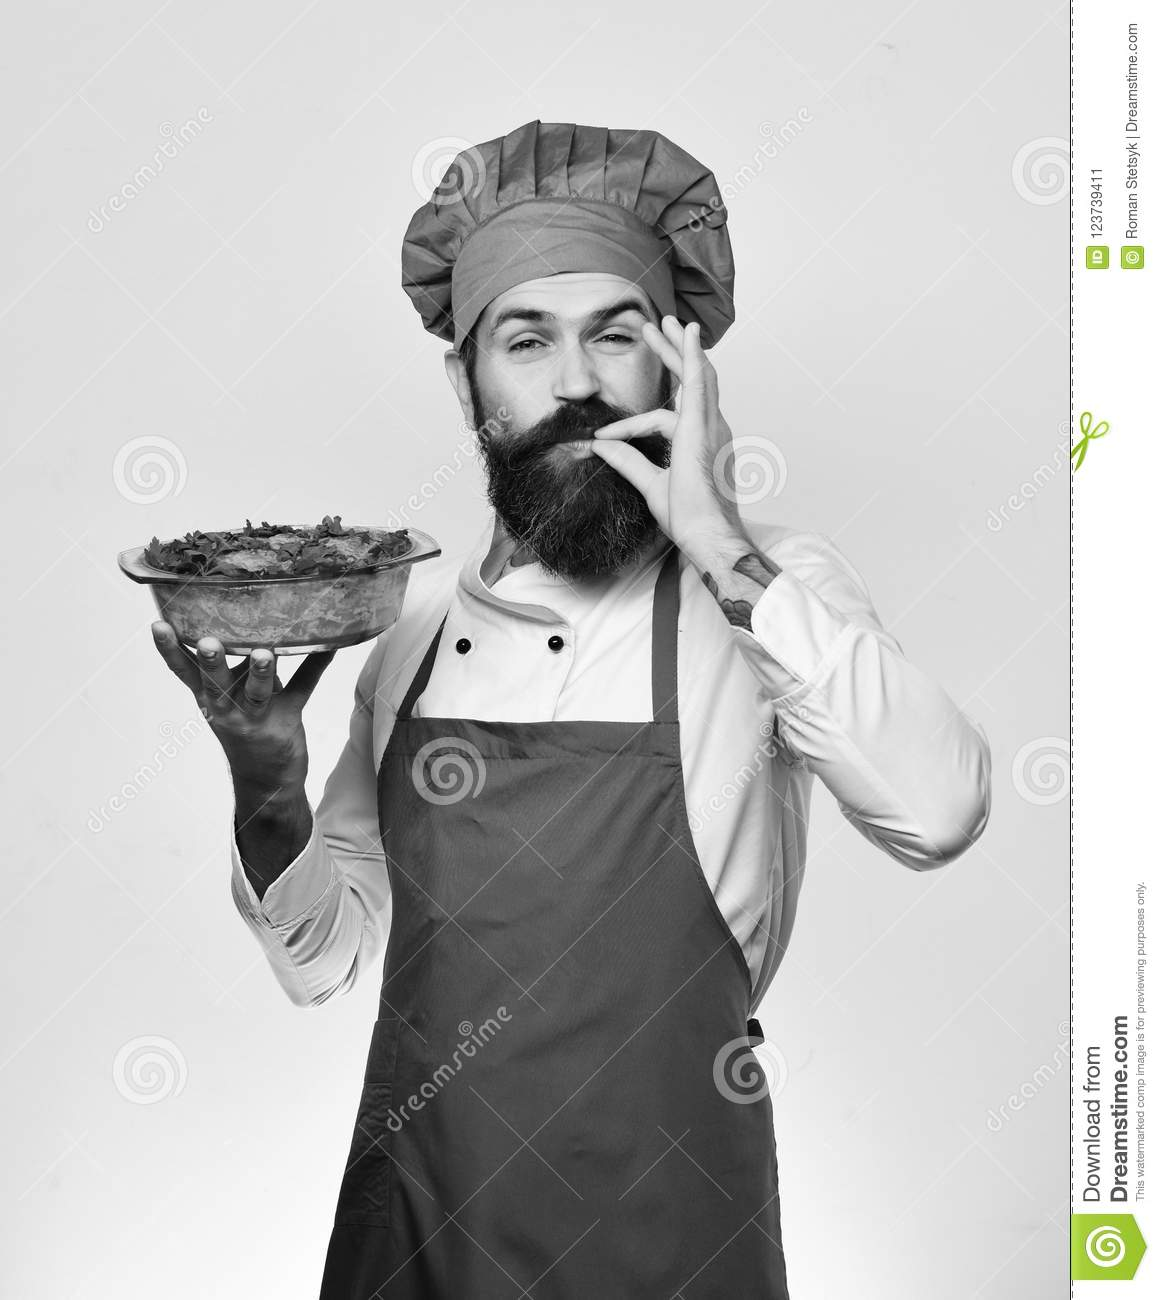 Chef holds bowl with potato casserole showing Super Tasty sign. Cook with happy face in burgundy uniform holds baked